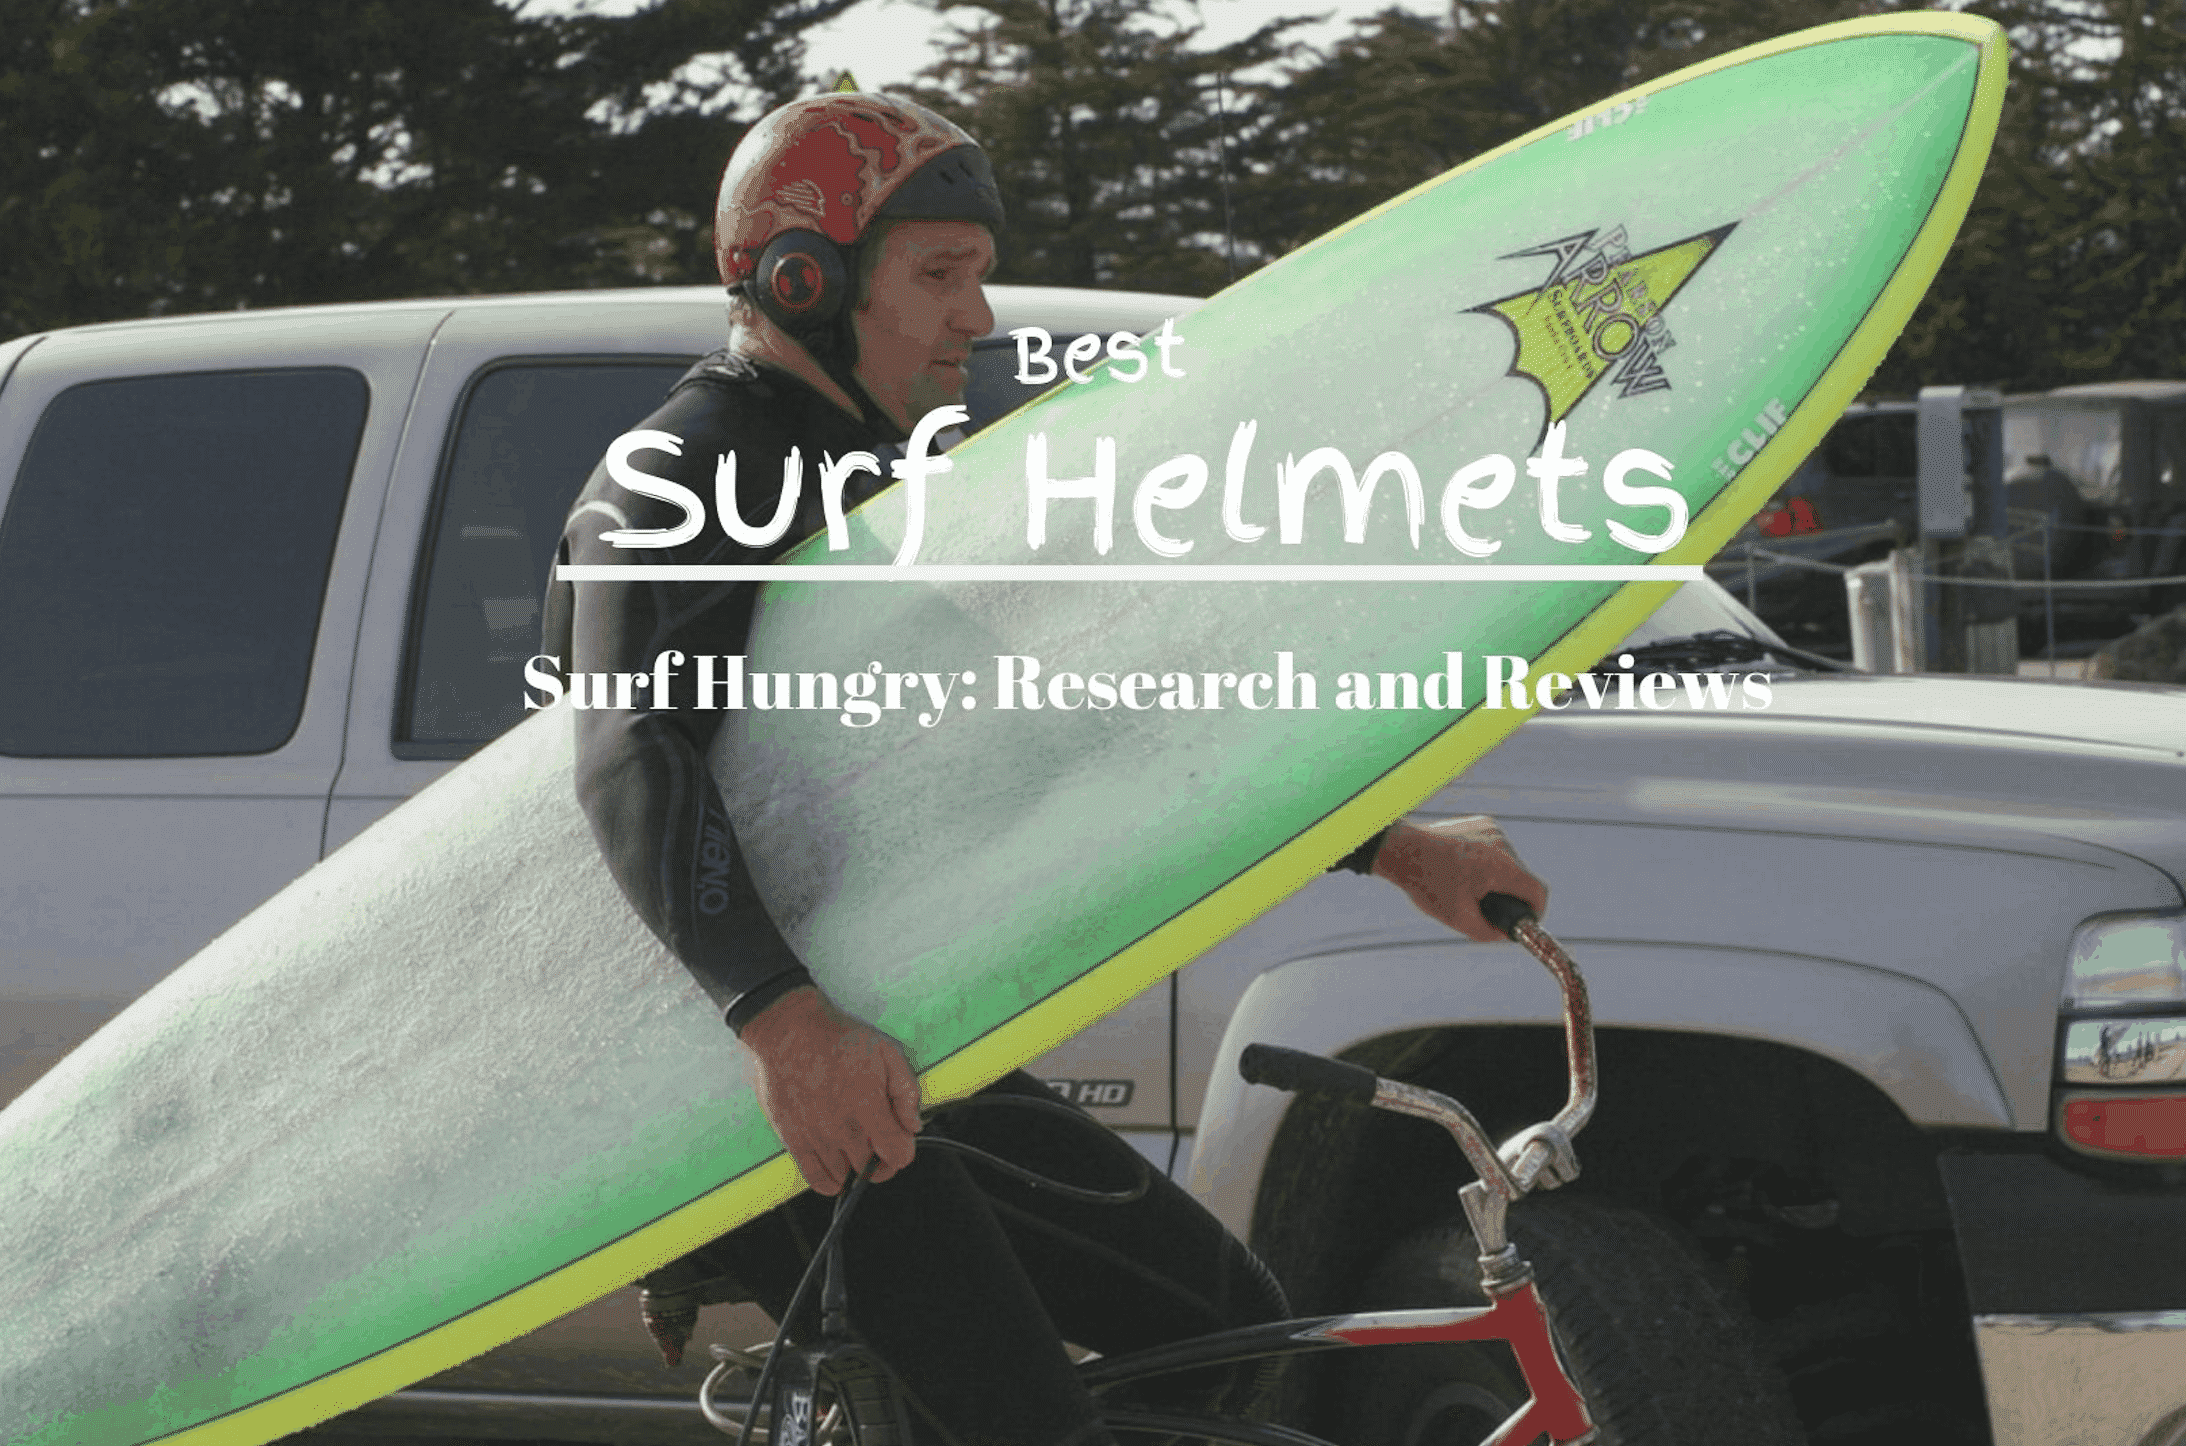 best surf helmets